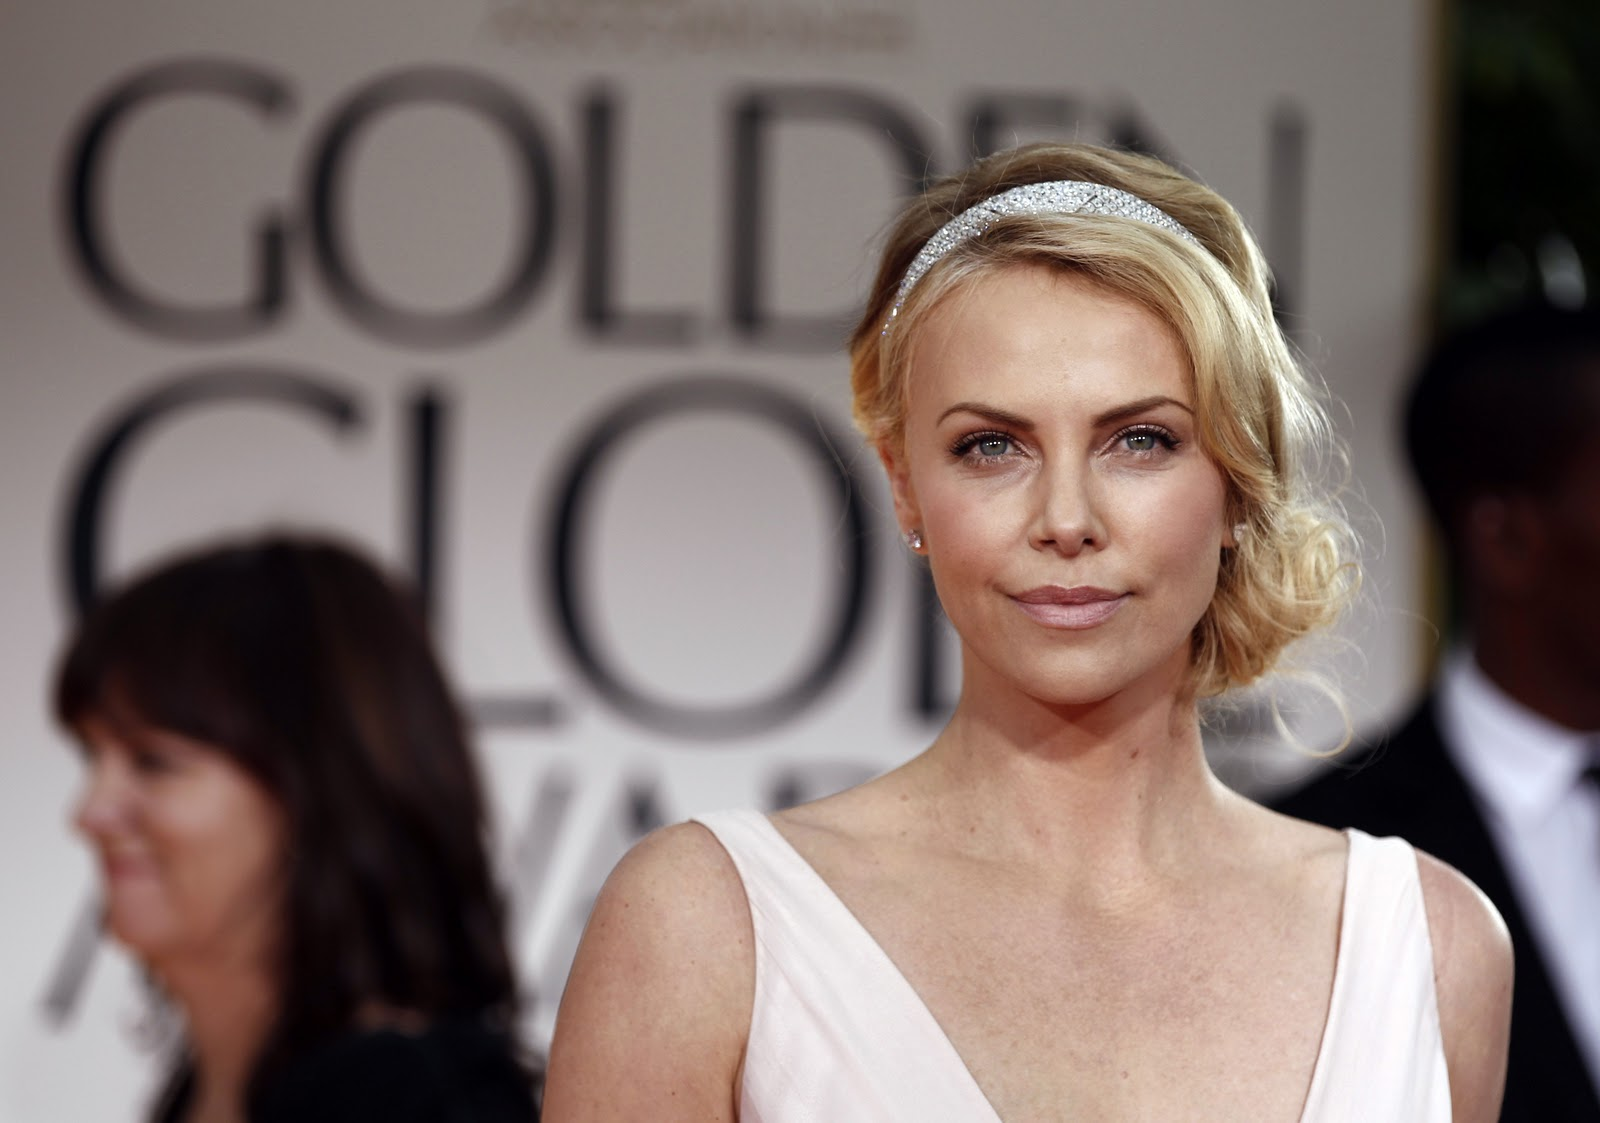 http://1.bp.blogspot.com/-Lu0zG3SHxjs/TxSpHewFs6I/AAAAAAAAAFs/ks8Wqz4QLgE/s1600/charlize_theron_69th_annual_golden_globe_awards_in_beverly_hills_january_15_2012_rYXbD84.jpg